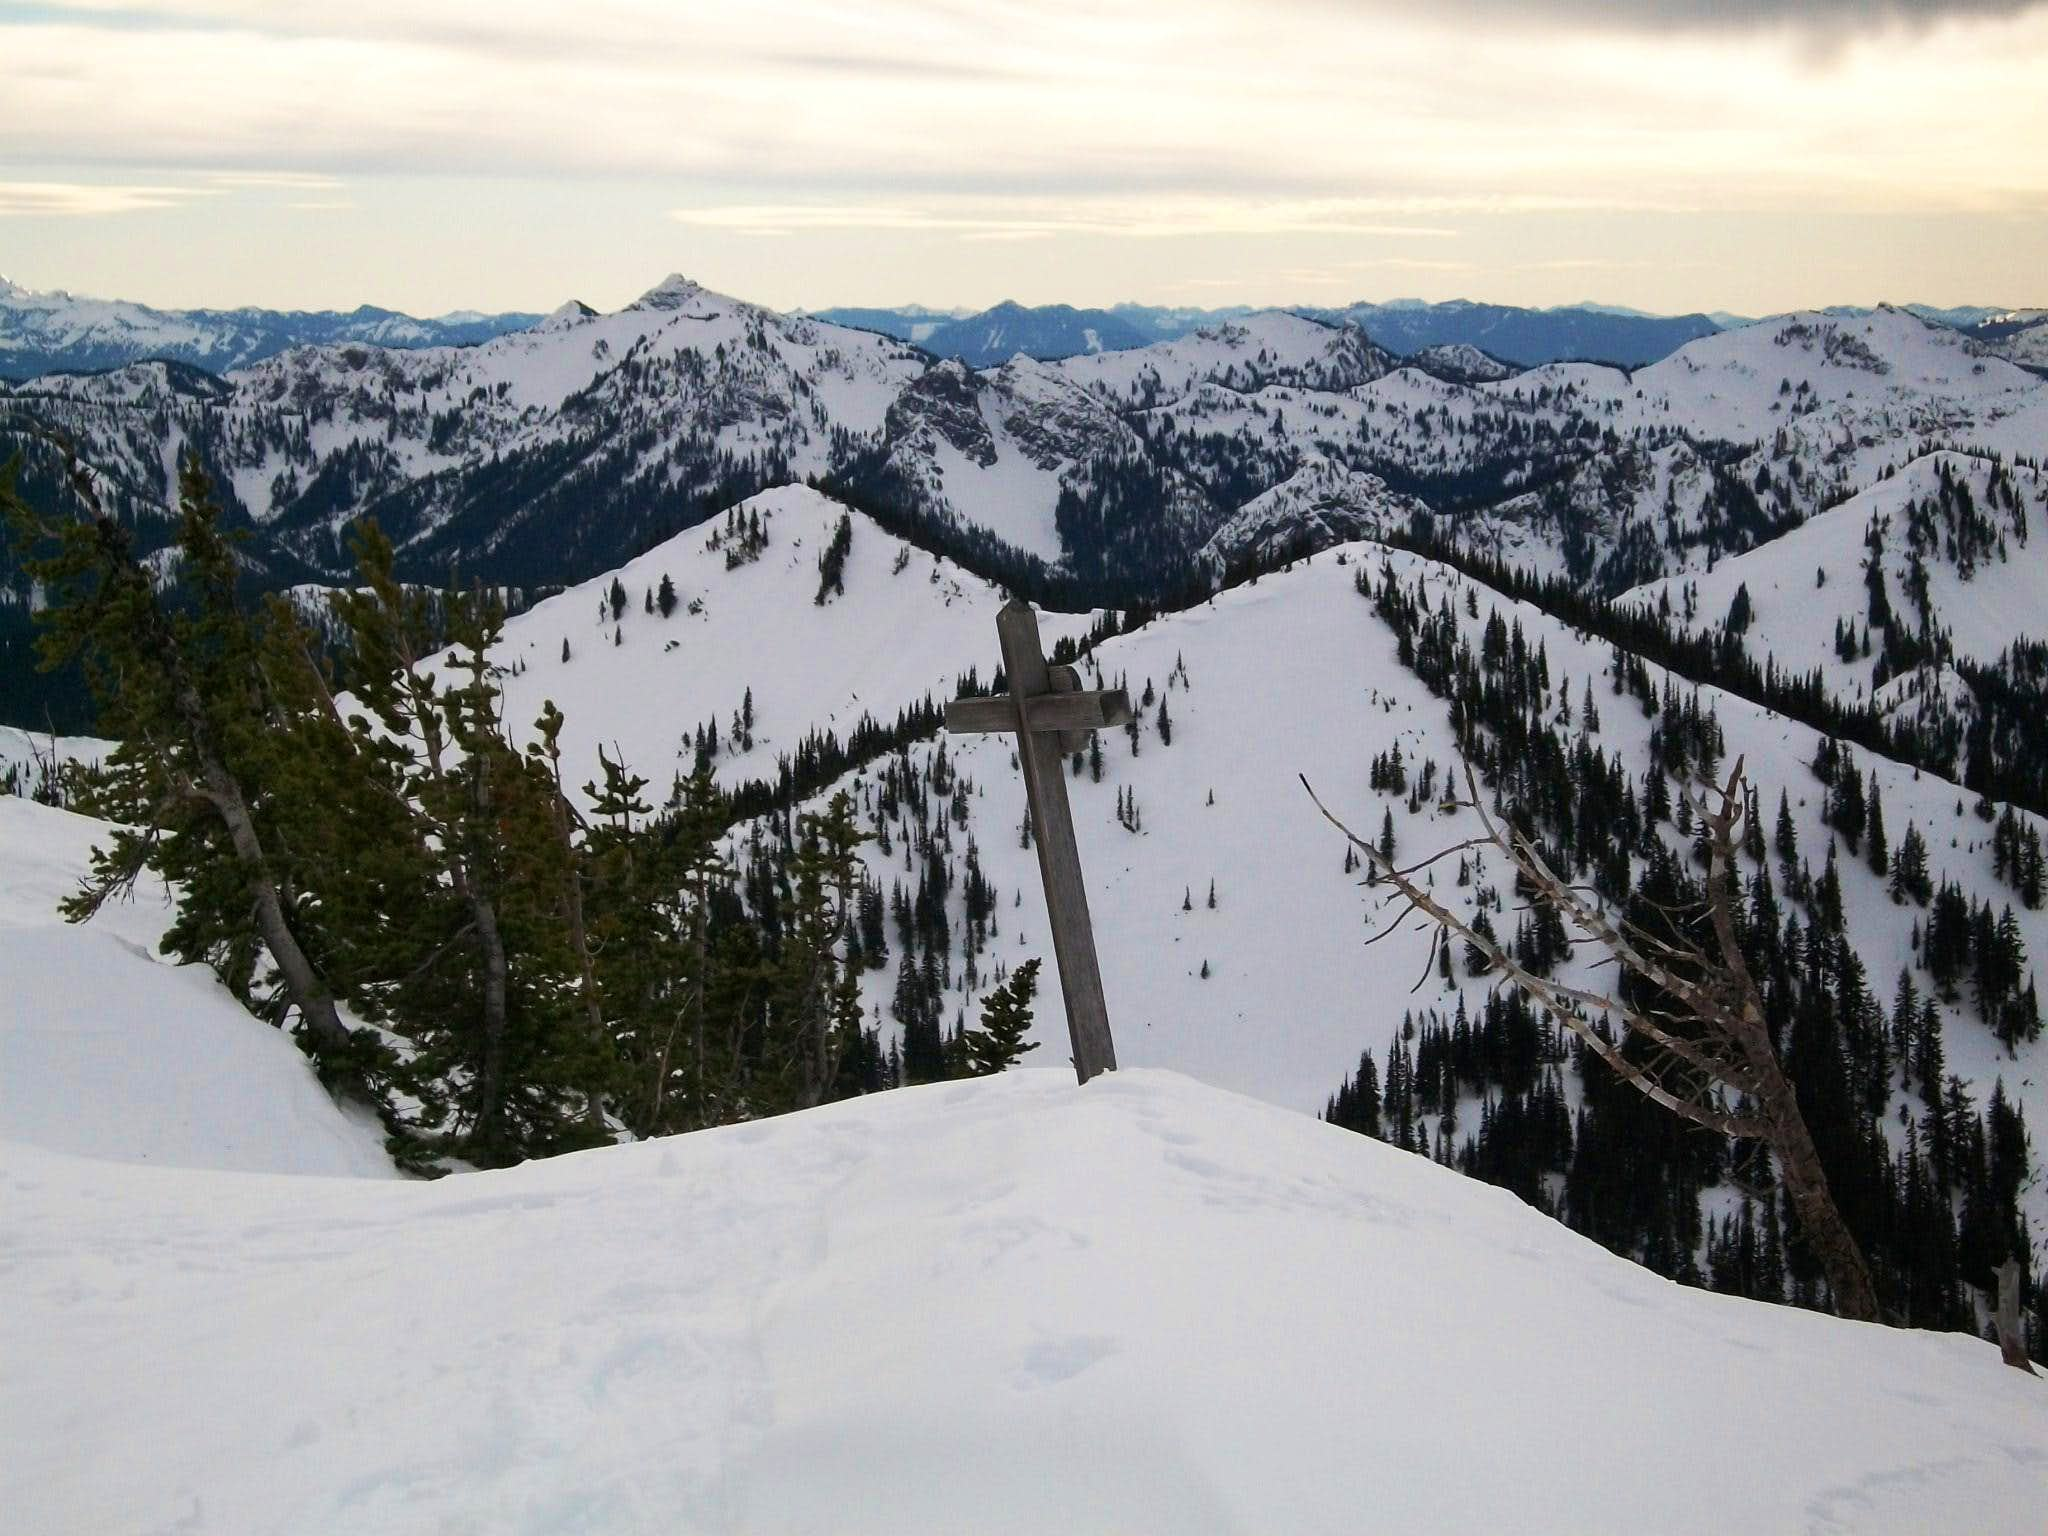 Platinum Peak via Bullion Basin (Winter Route)